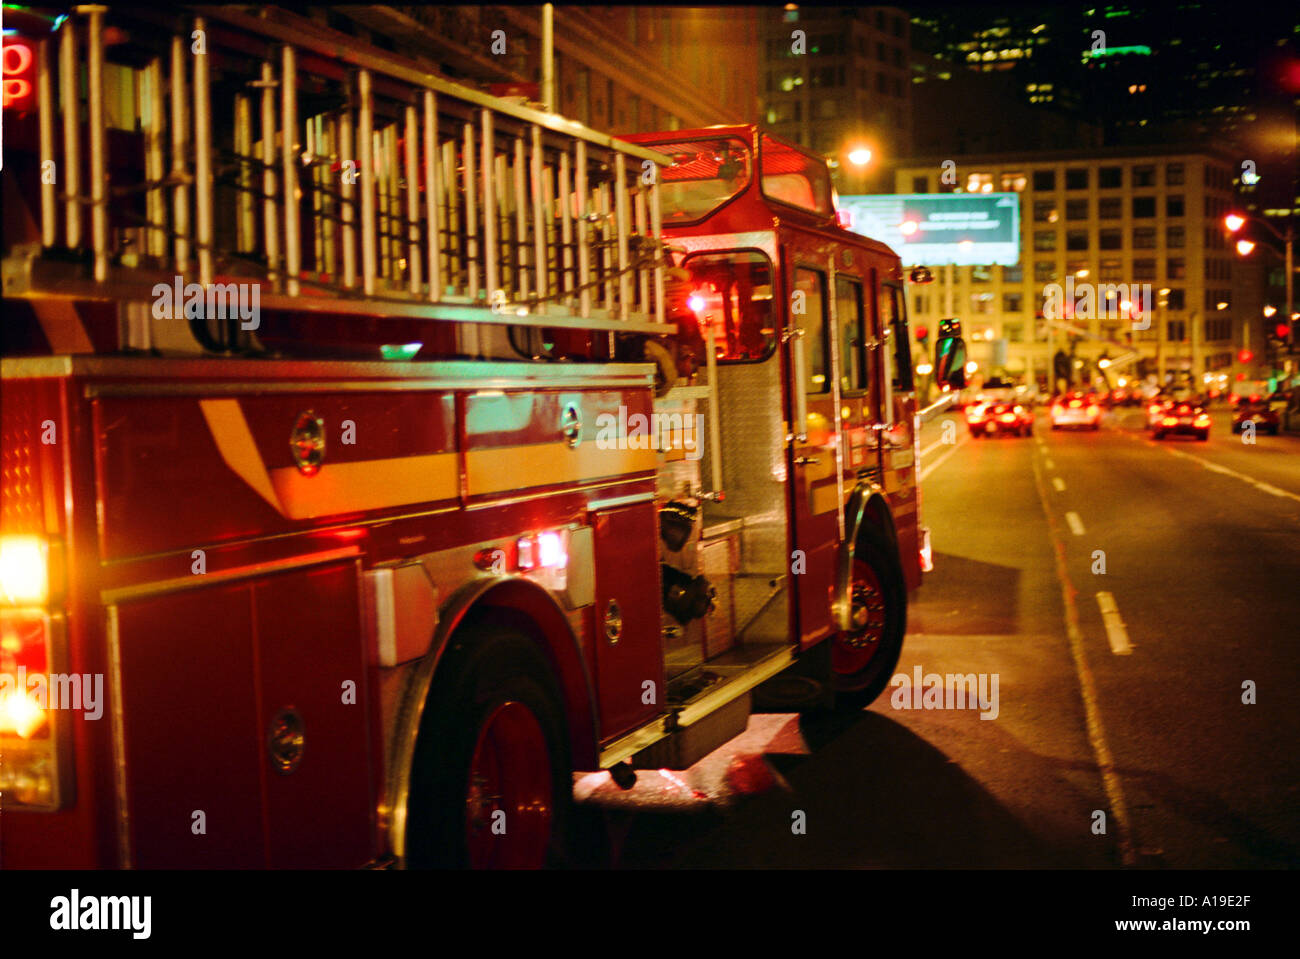 A fire truck parked on a street in downtown seattle for 7 salon downtown seattle